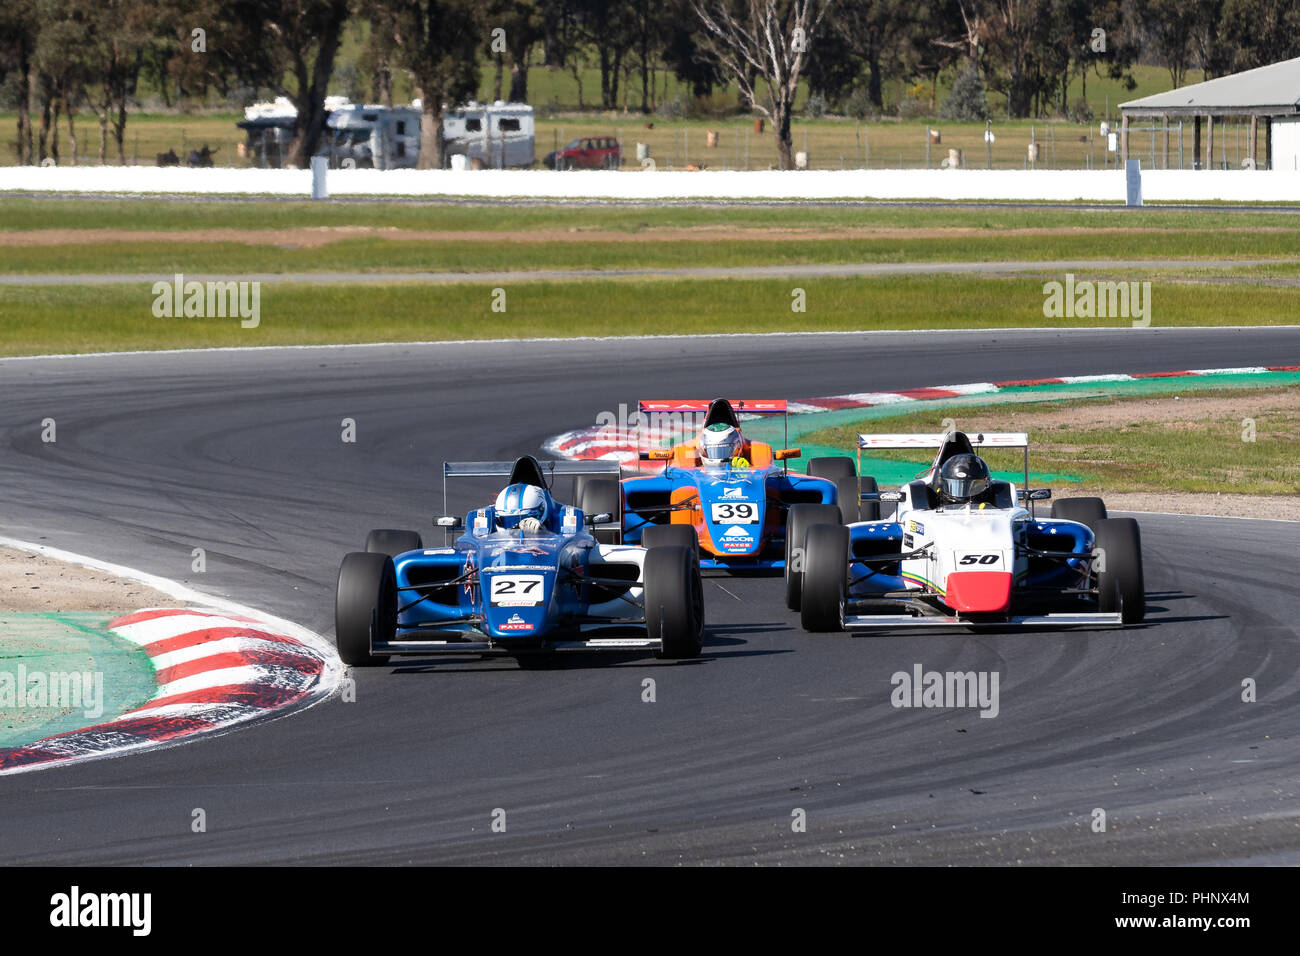 MELBOURNE, AUSTRALIA – SEPTEMBER 2: Zayd Tones & Ardie Jonic during the 2018 Shannon's Nationals, Round 5 - Winton, Australia on September 02 2018. Credit: Dave Hewison Sports/Alamy Live News - Stock Image